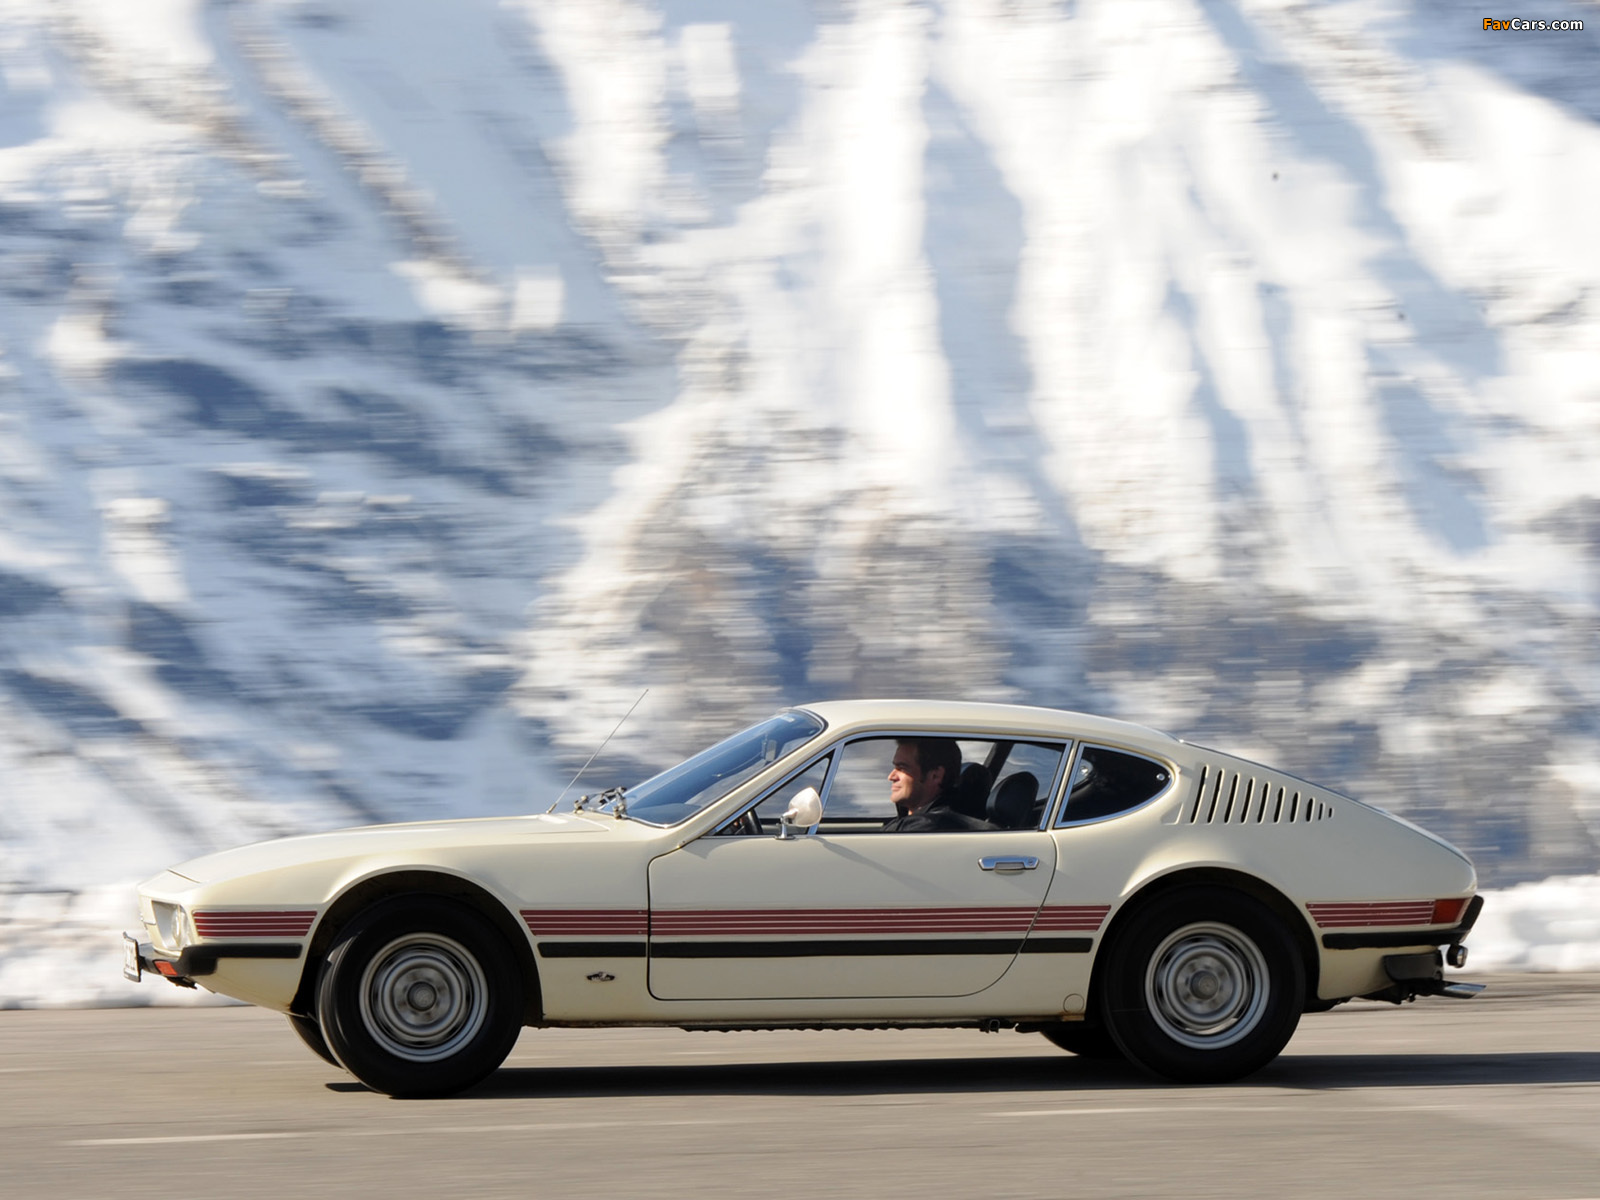 Car Volkswagen SP2 1 generation coupe 1.7 MT: specifications ...